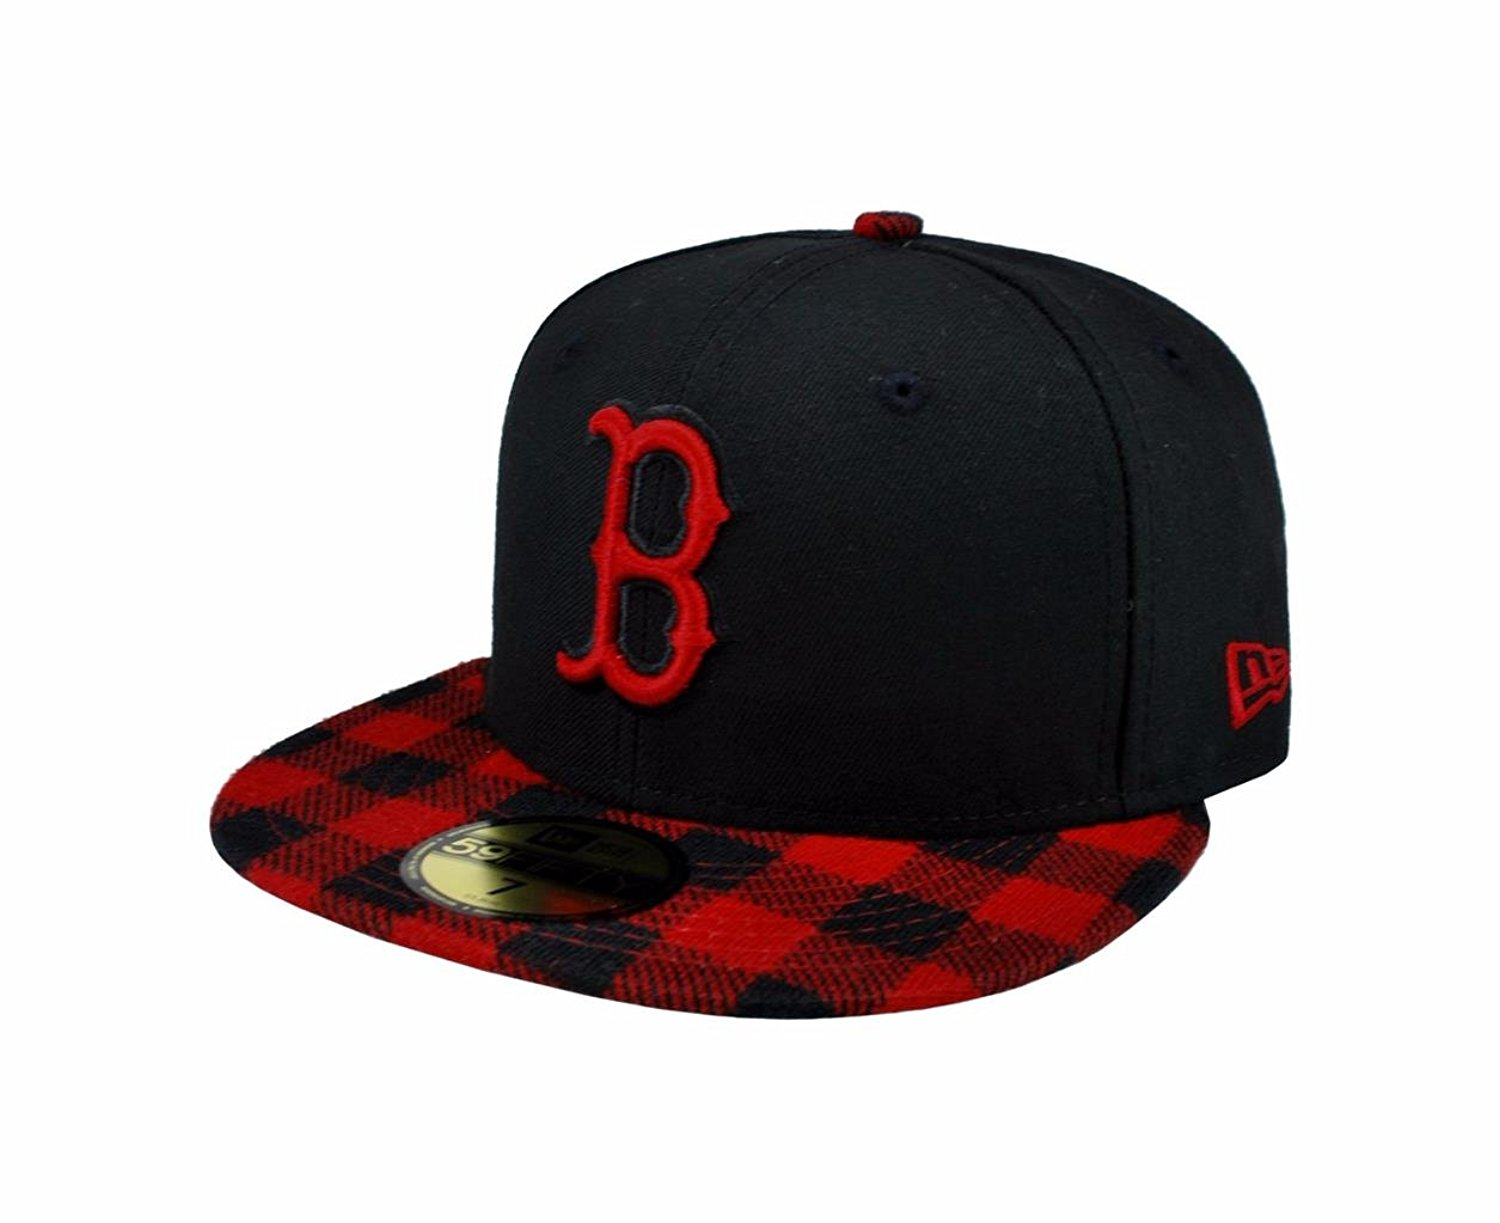 new concept c4254 7057d Get Quotations · NEW ERA 59fifty Mlb Boston Red Sox Hat Premium Fitted Black  with Red Cap